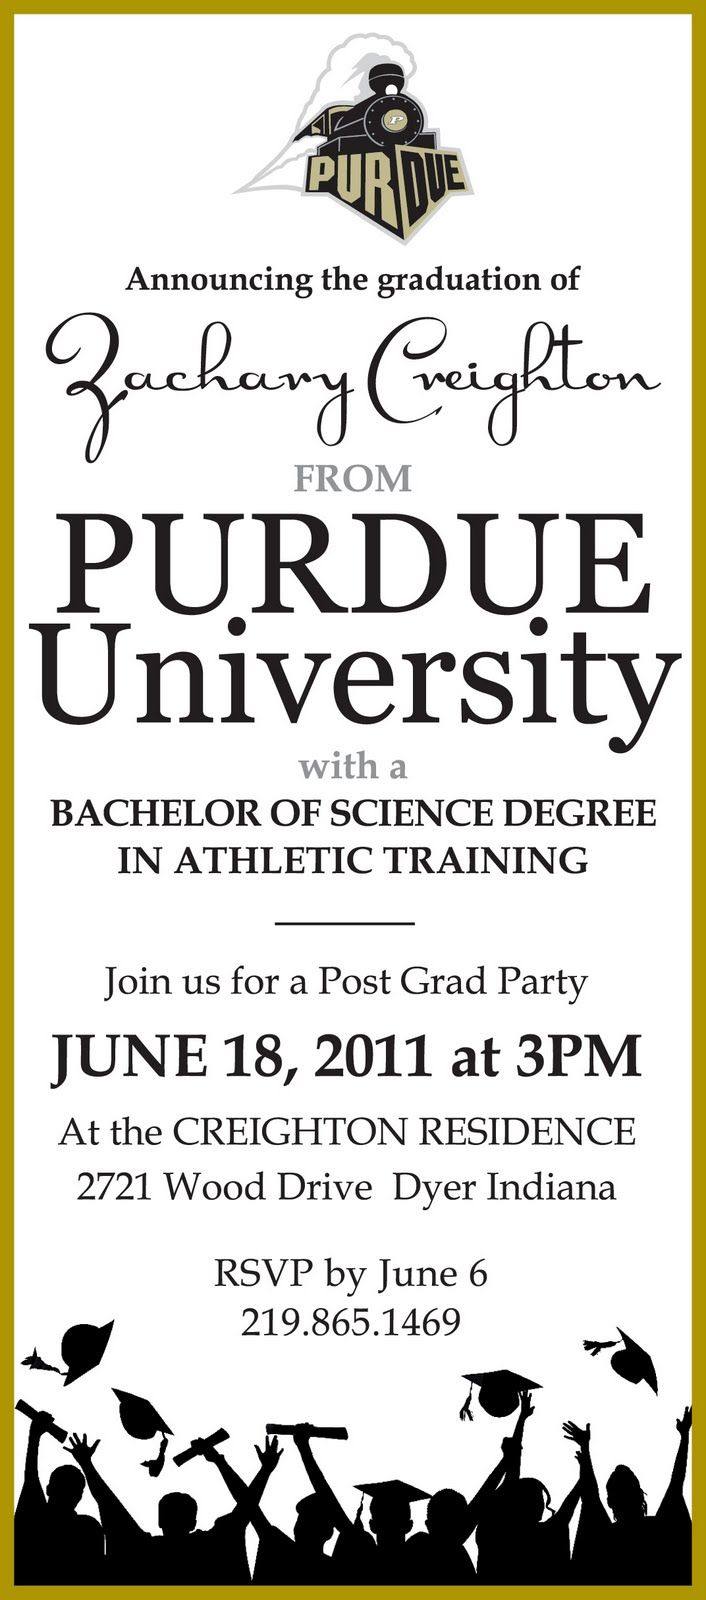 purdue logo graduation invitation | Purdue University graduation party invitation along with a High School ...